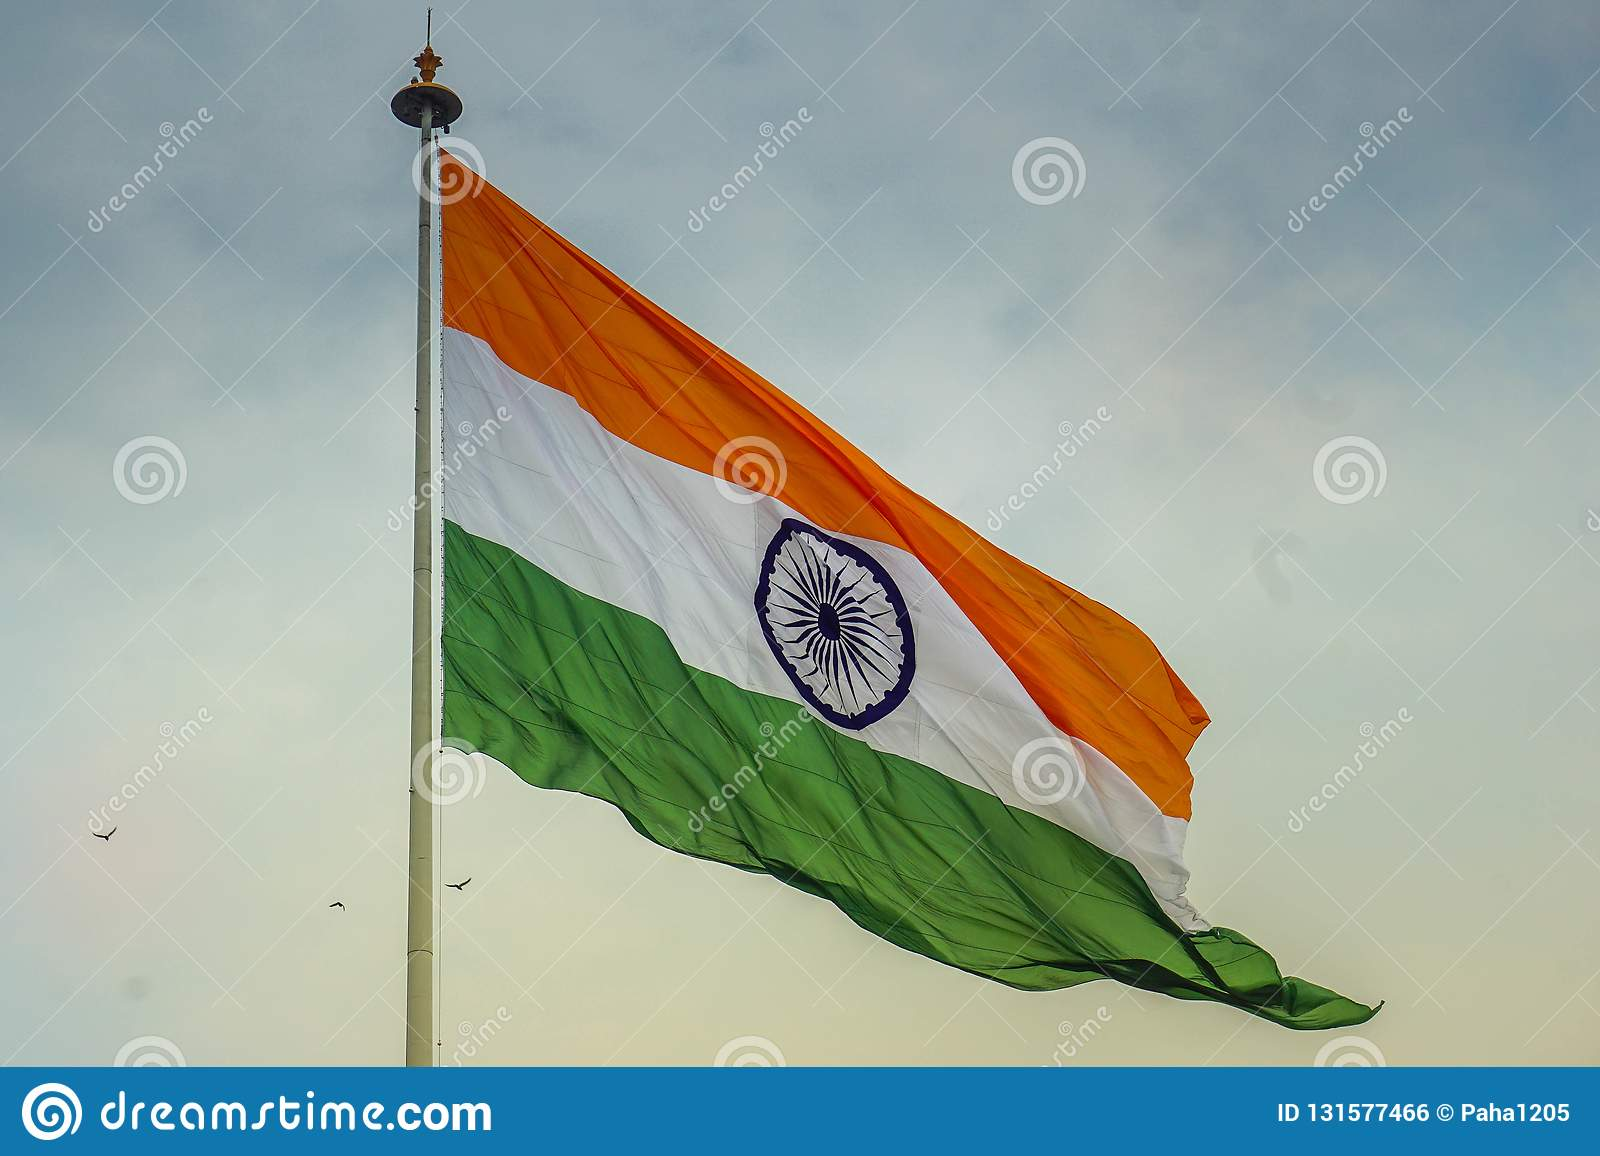 Indian flag waving in the wind